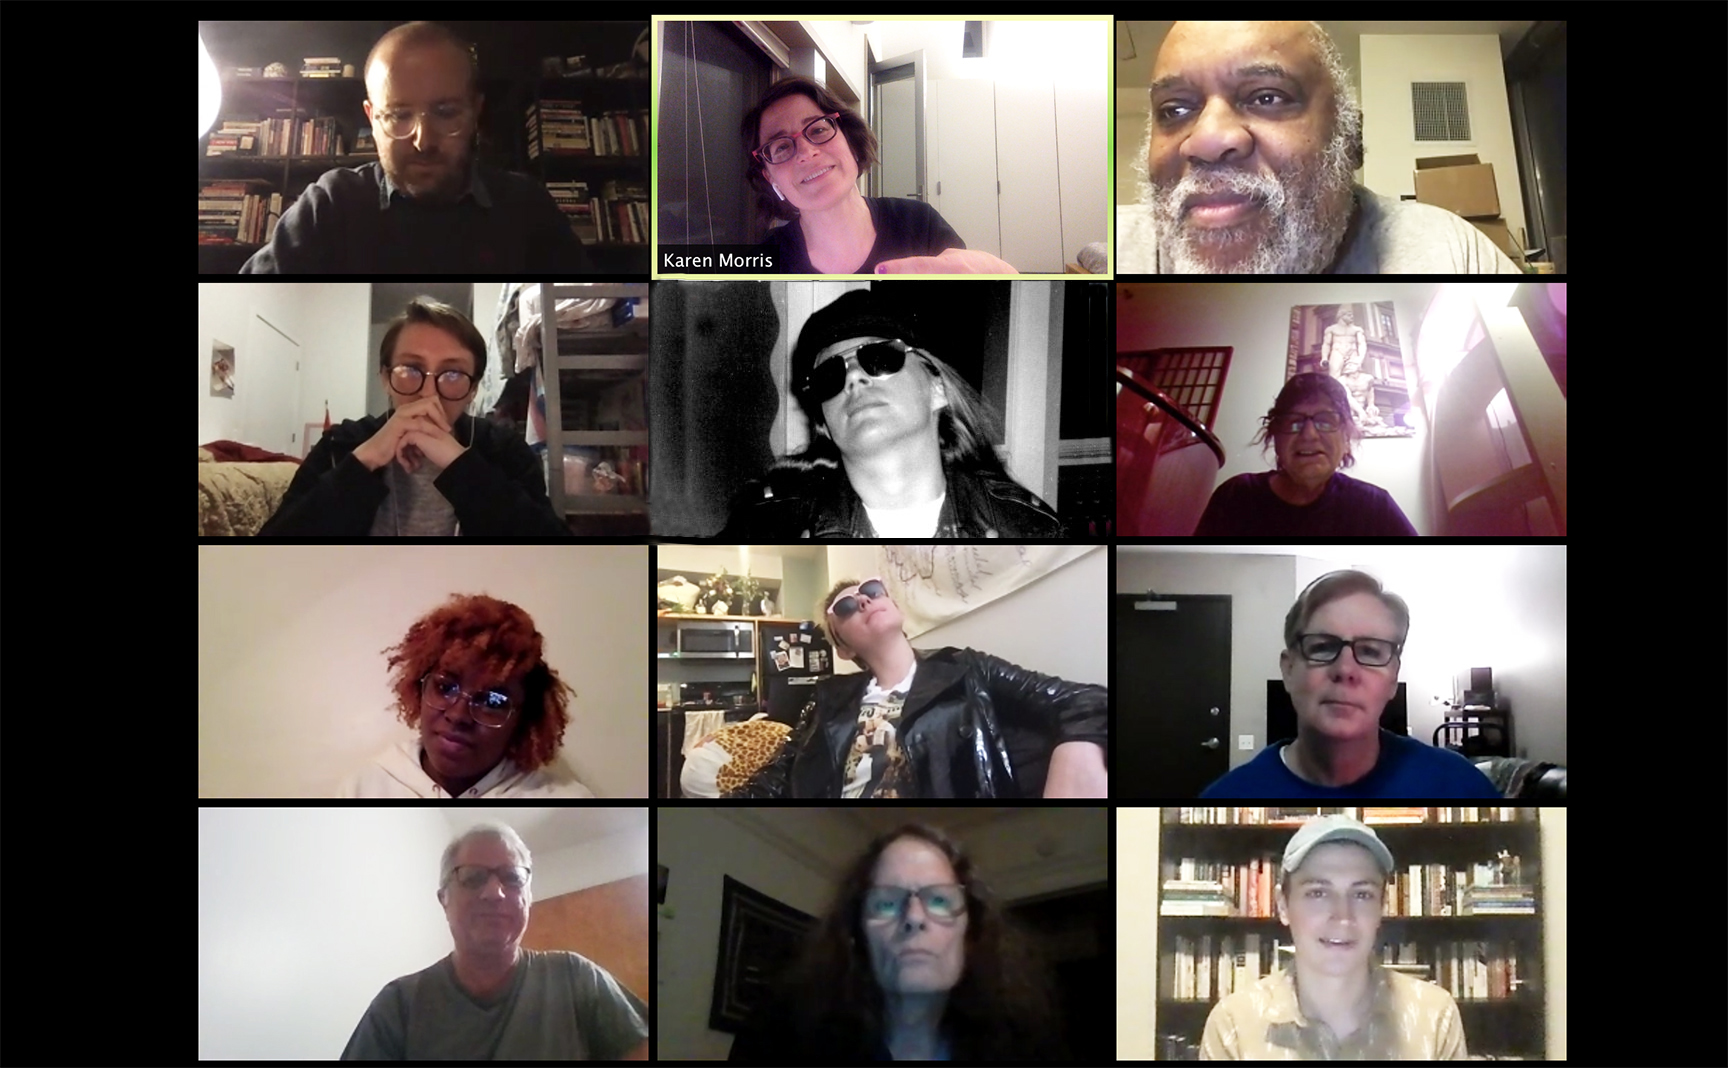 Screenshot of participants in a Zoom meeting.